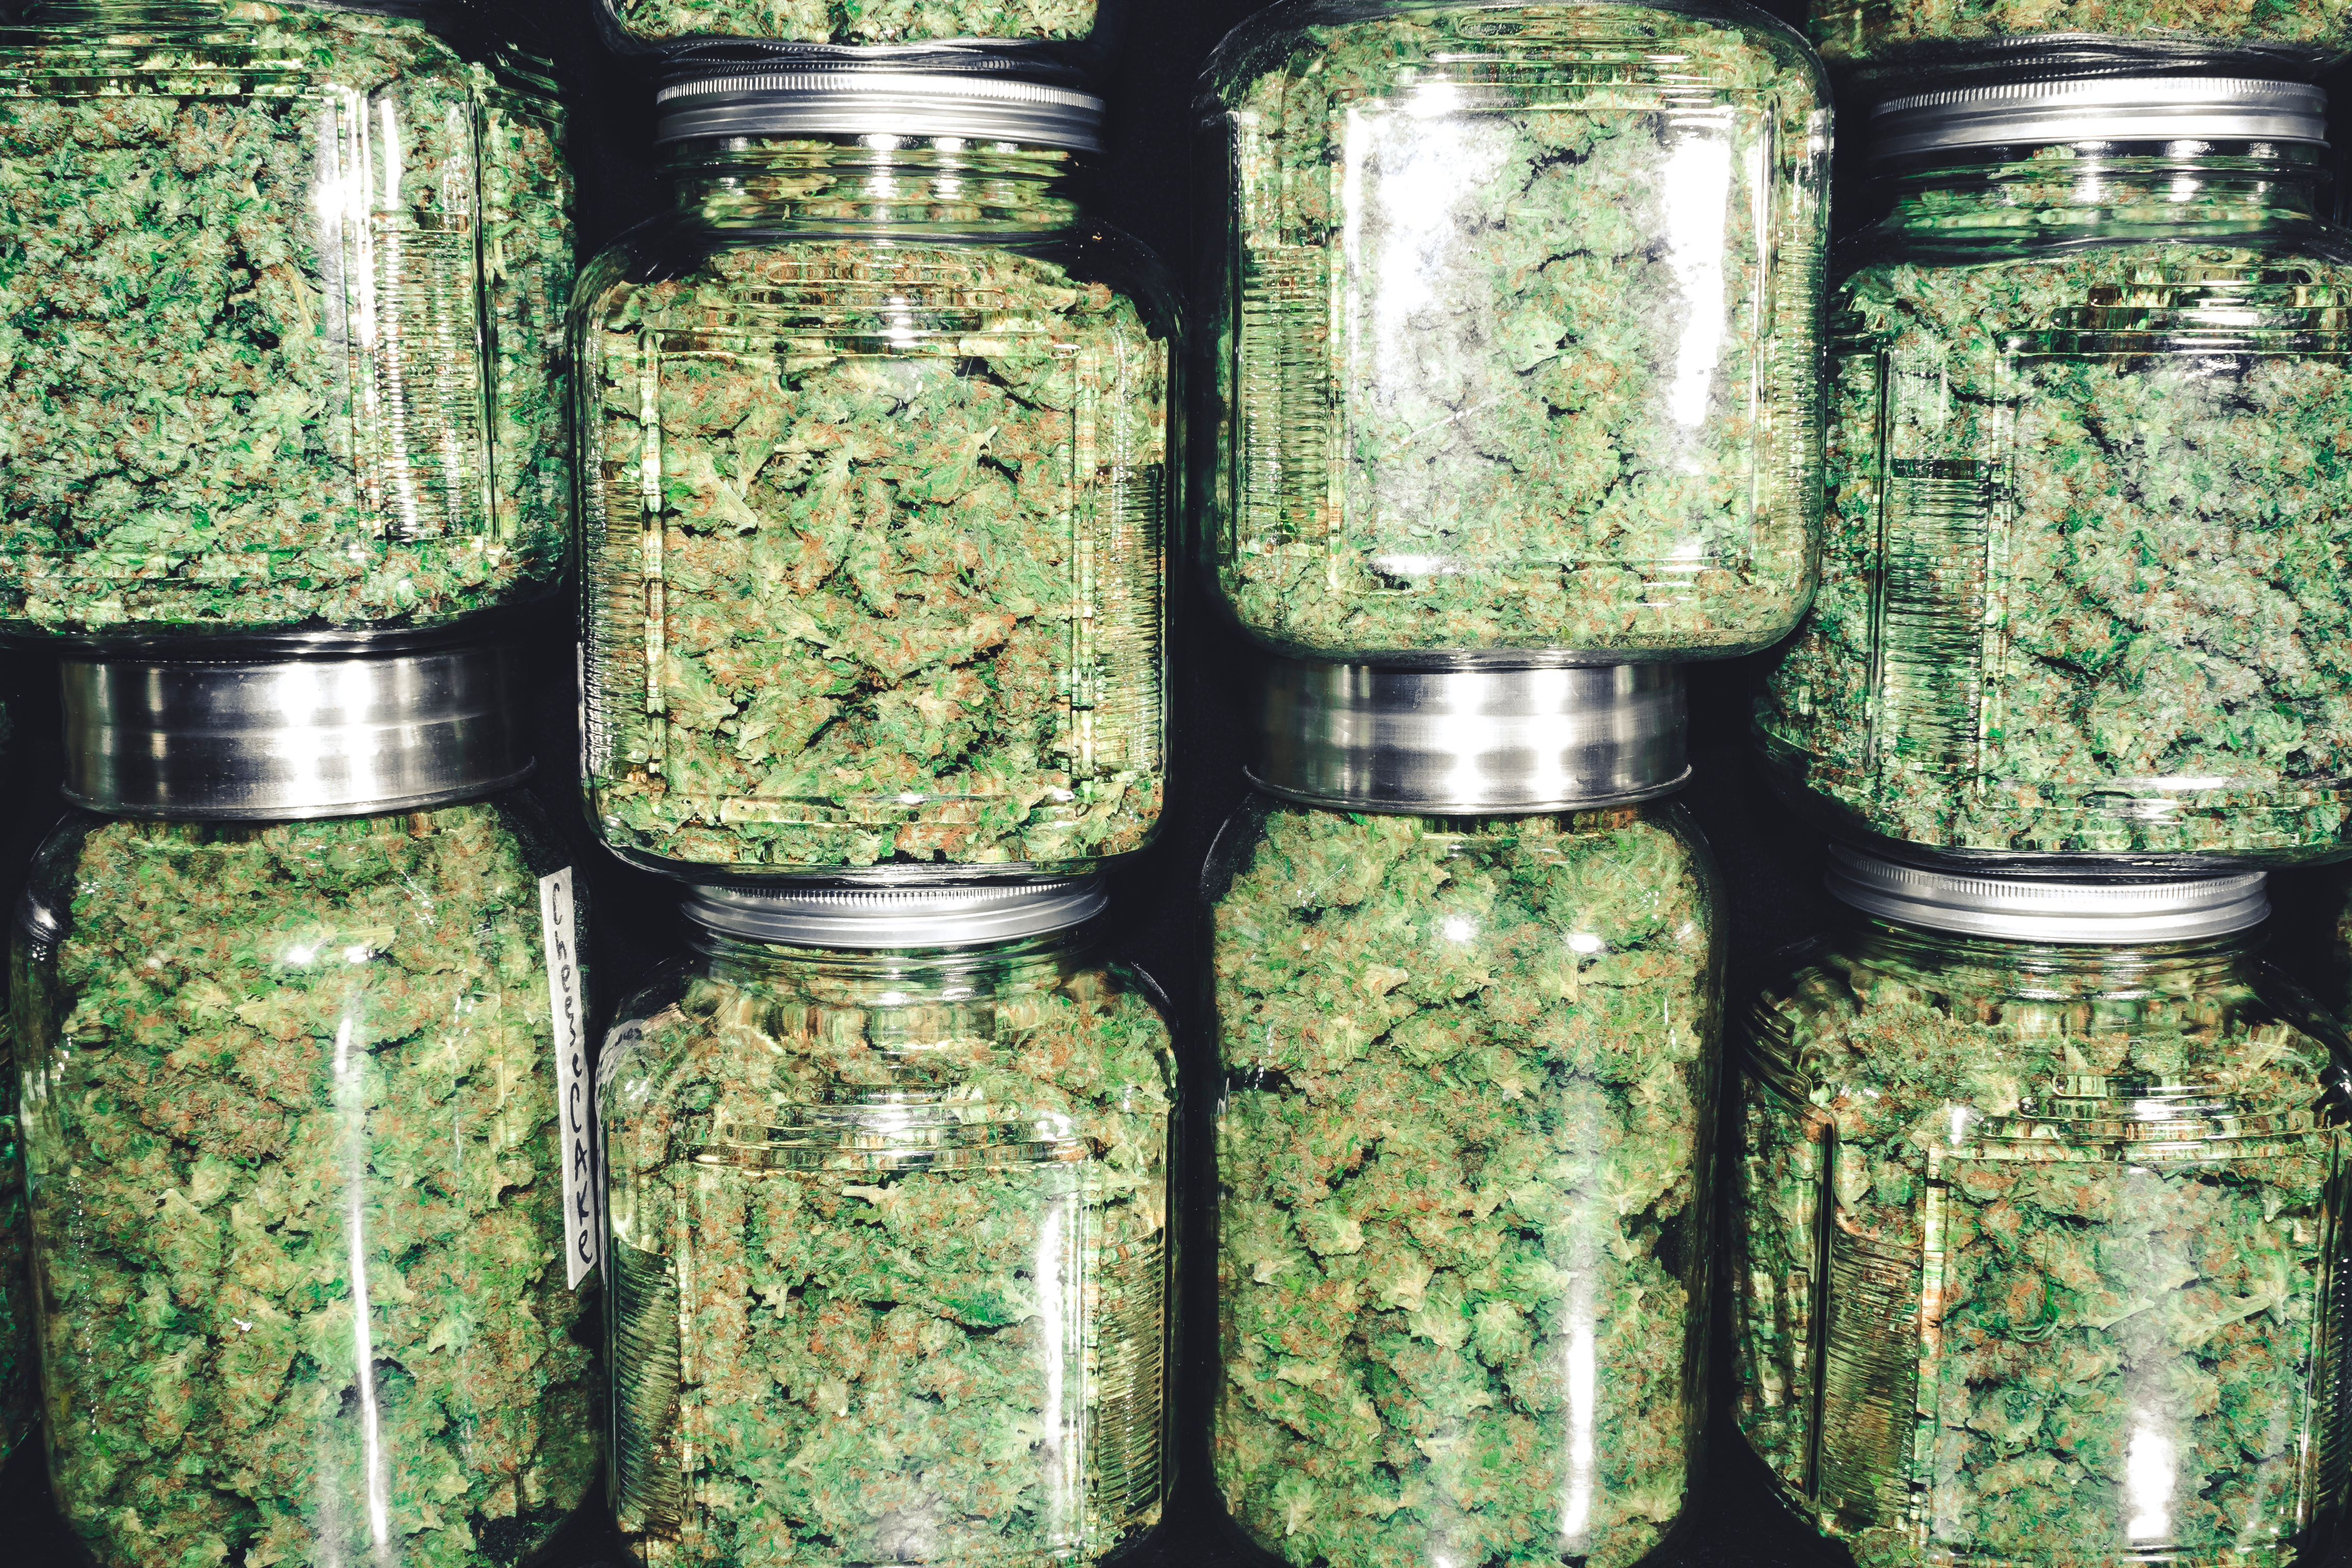 Large jars full of buds of marijuana stacked on top of each other.